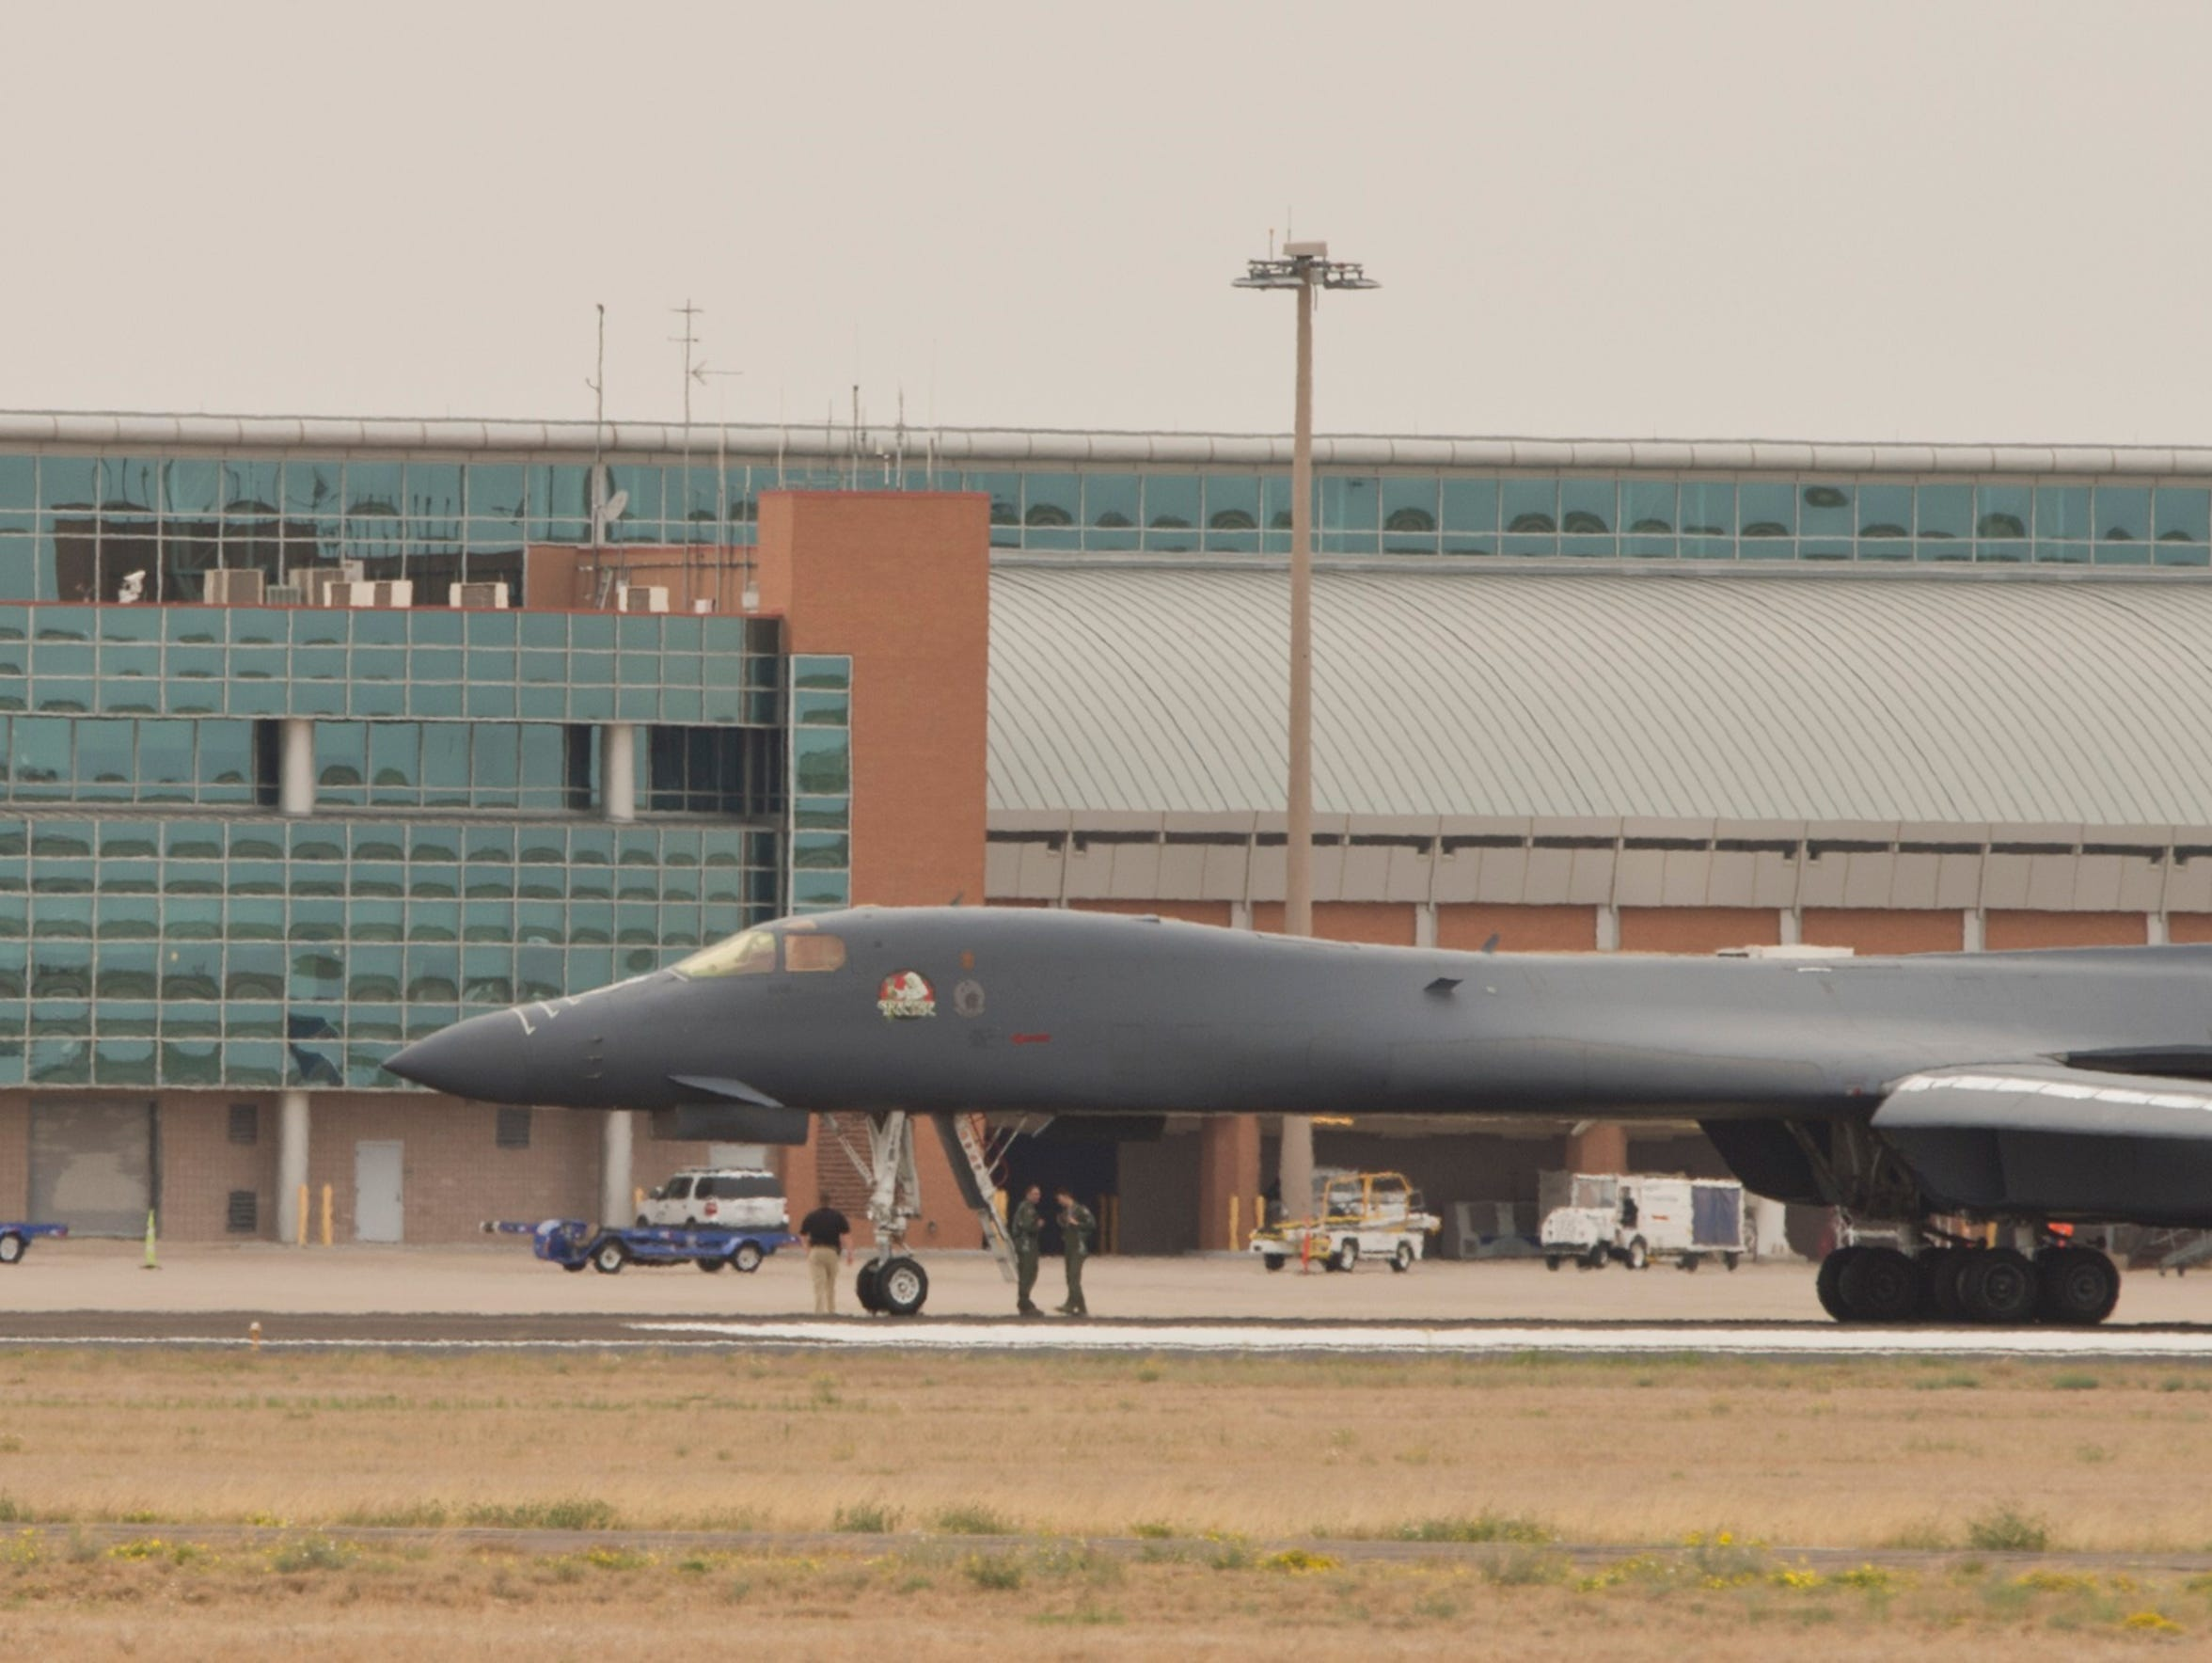 A Dyess Air Force Base  B-1B Lancer had to make an emergency landing at Midland International Airport, parking on the main north/south runway. None of the crew was injured.